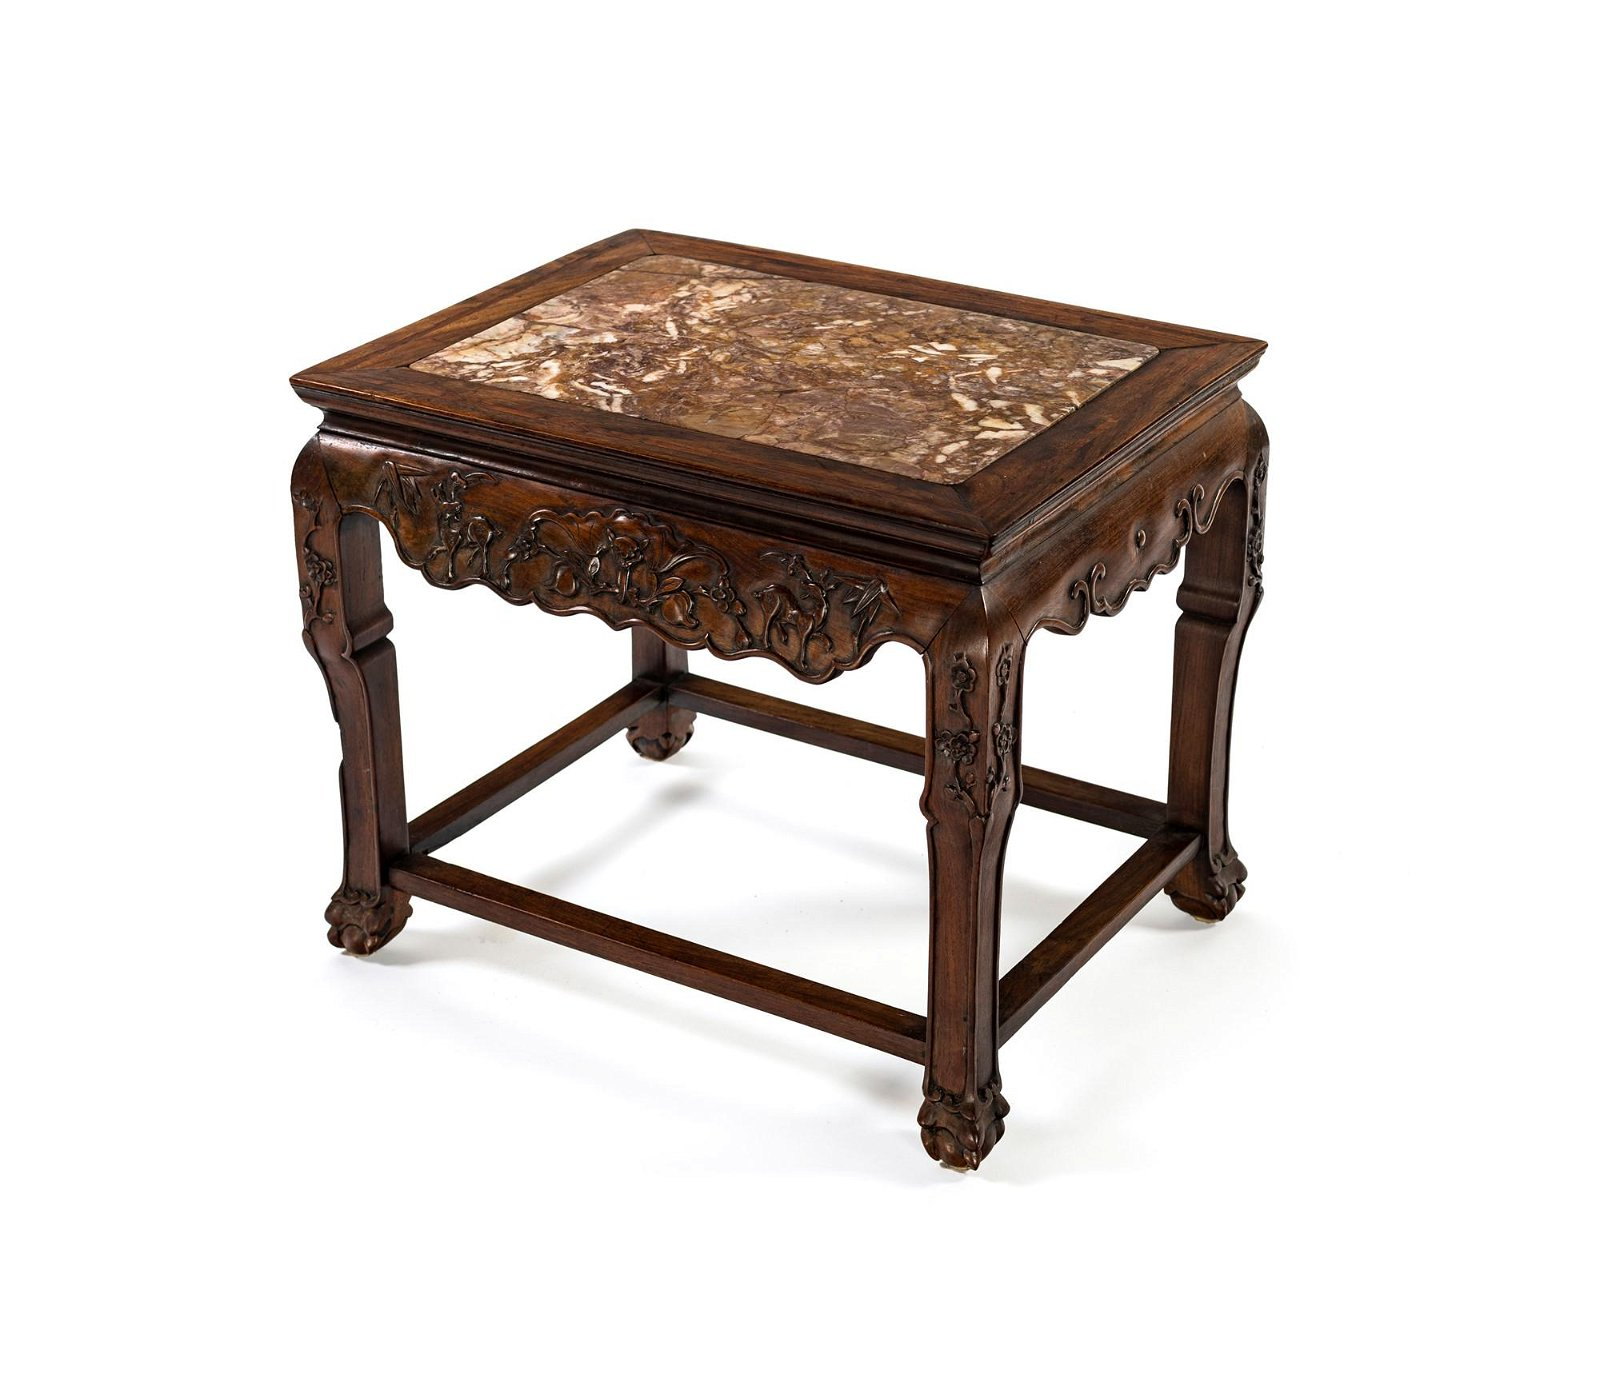 Wooden coffee table with marble top